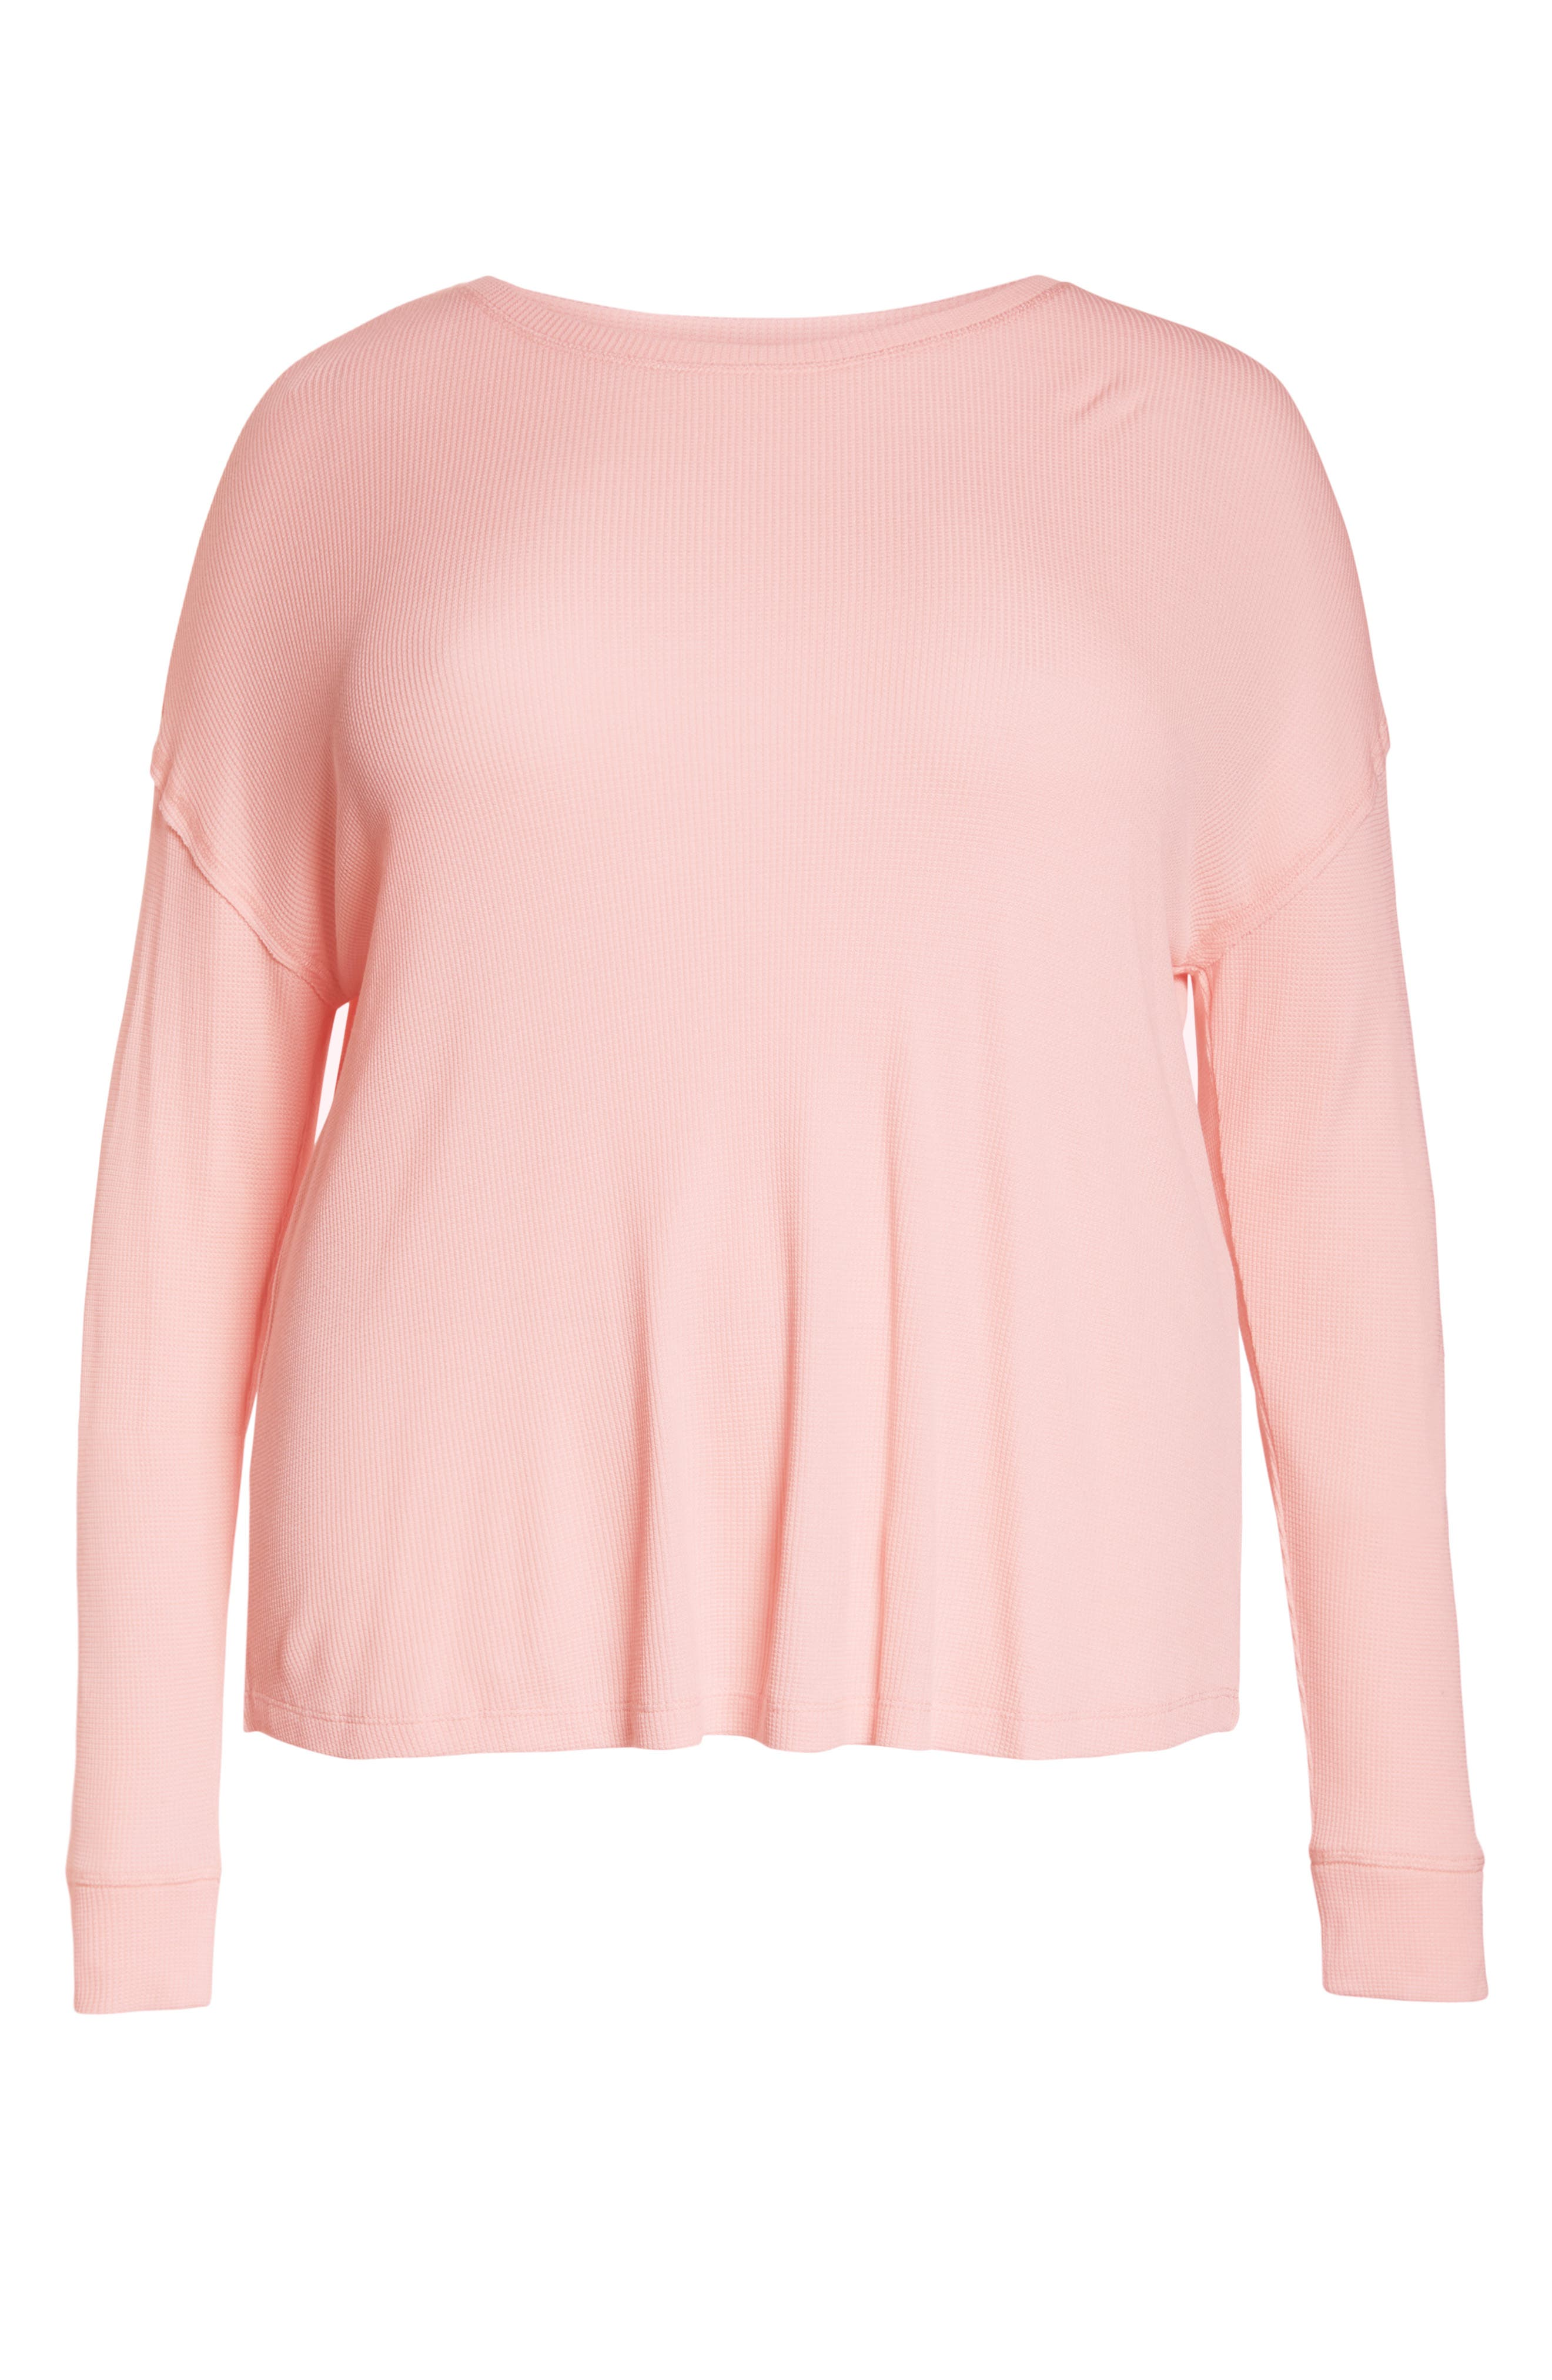 Daybreak Thermal Tee,                             Alternate thumbnail 6, color,                             PINK FIZZ